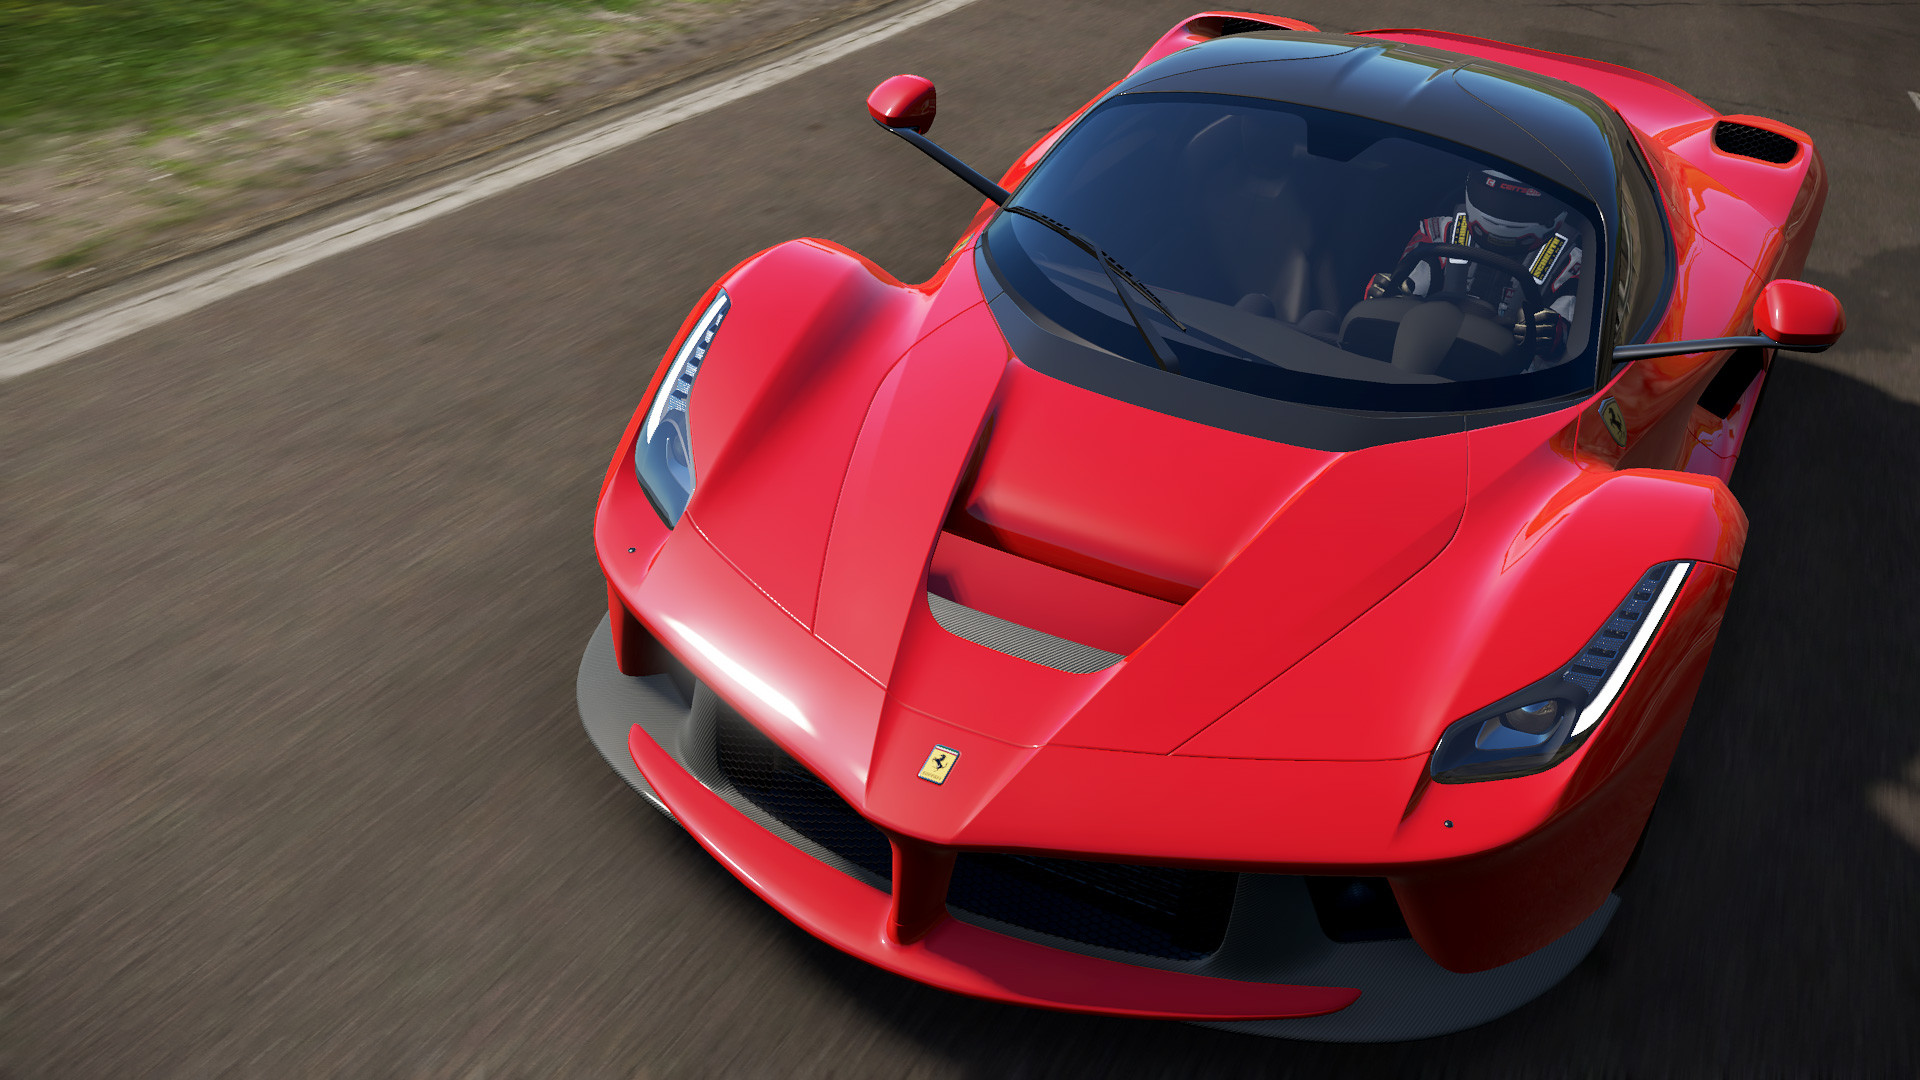 New Game Console Announced By Project Cars Developer